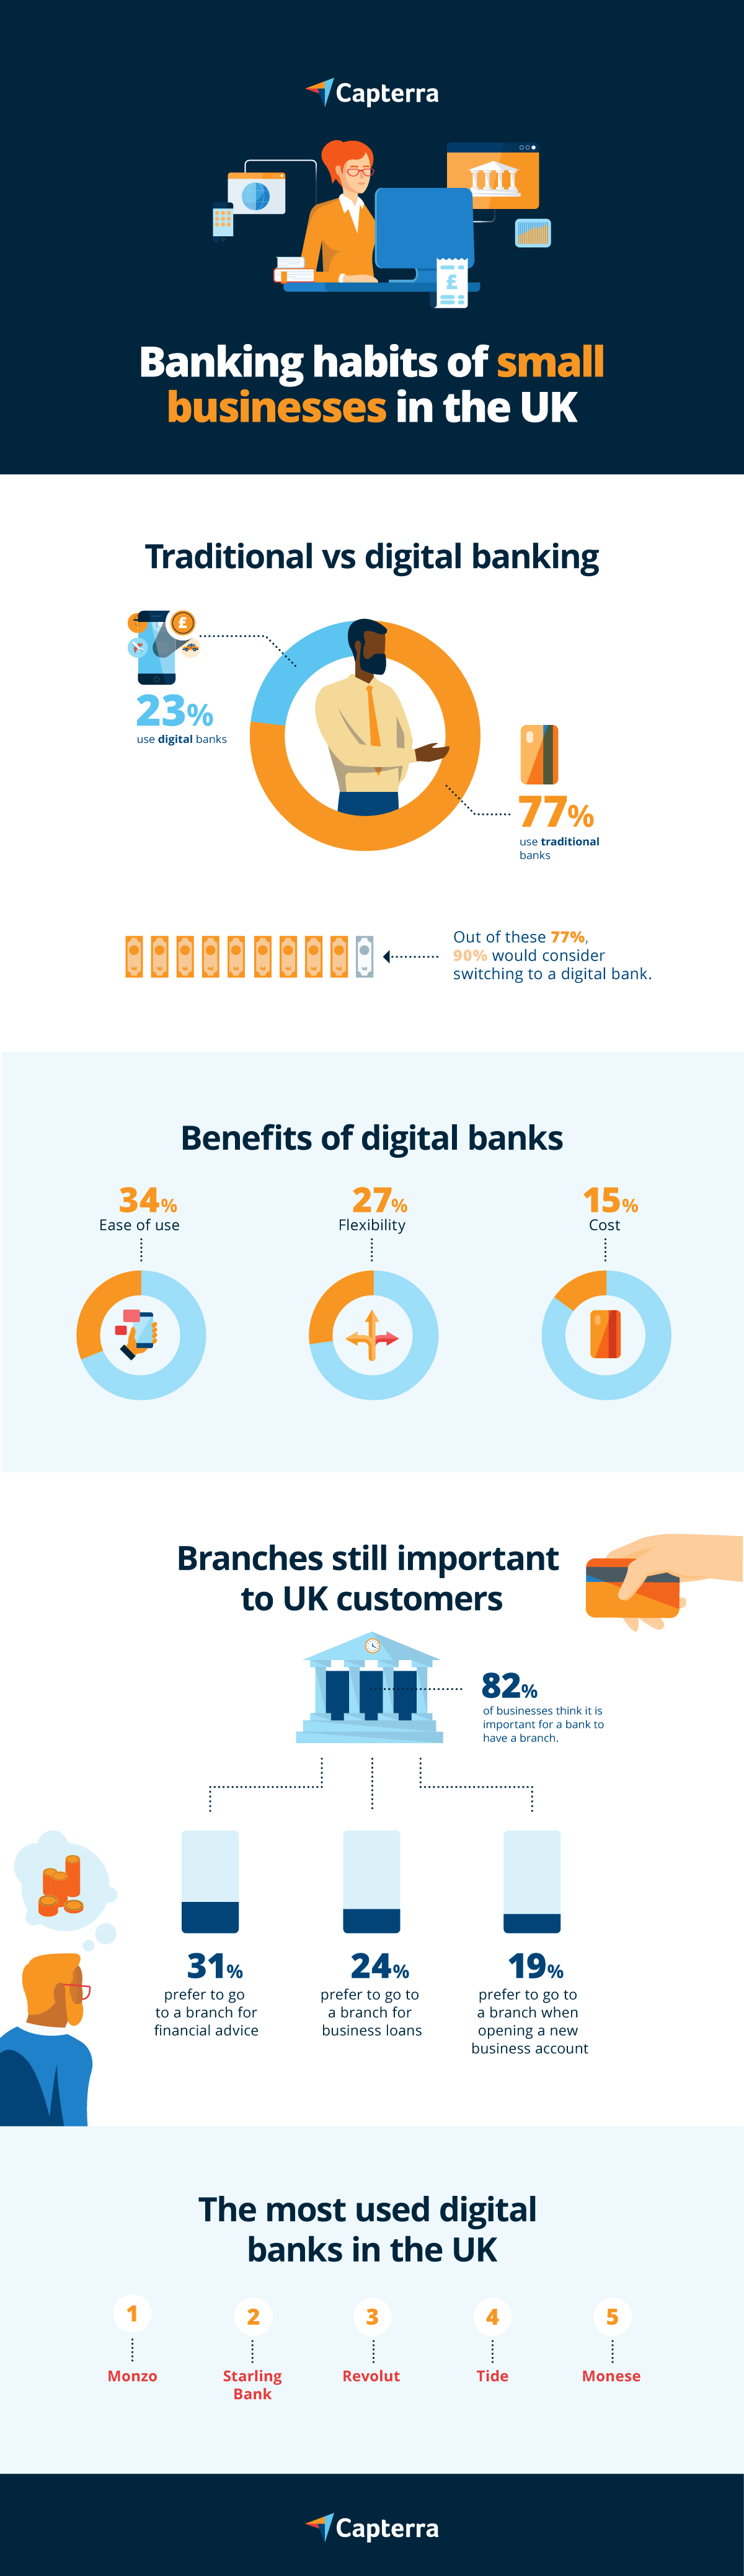 infographic small business banking digital versus traditional banking in the uk